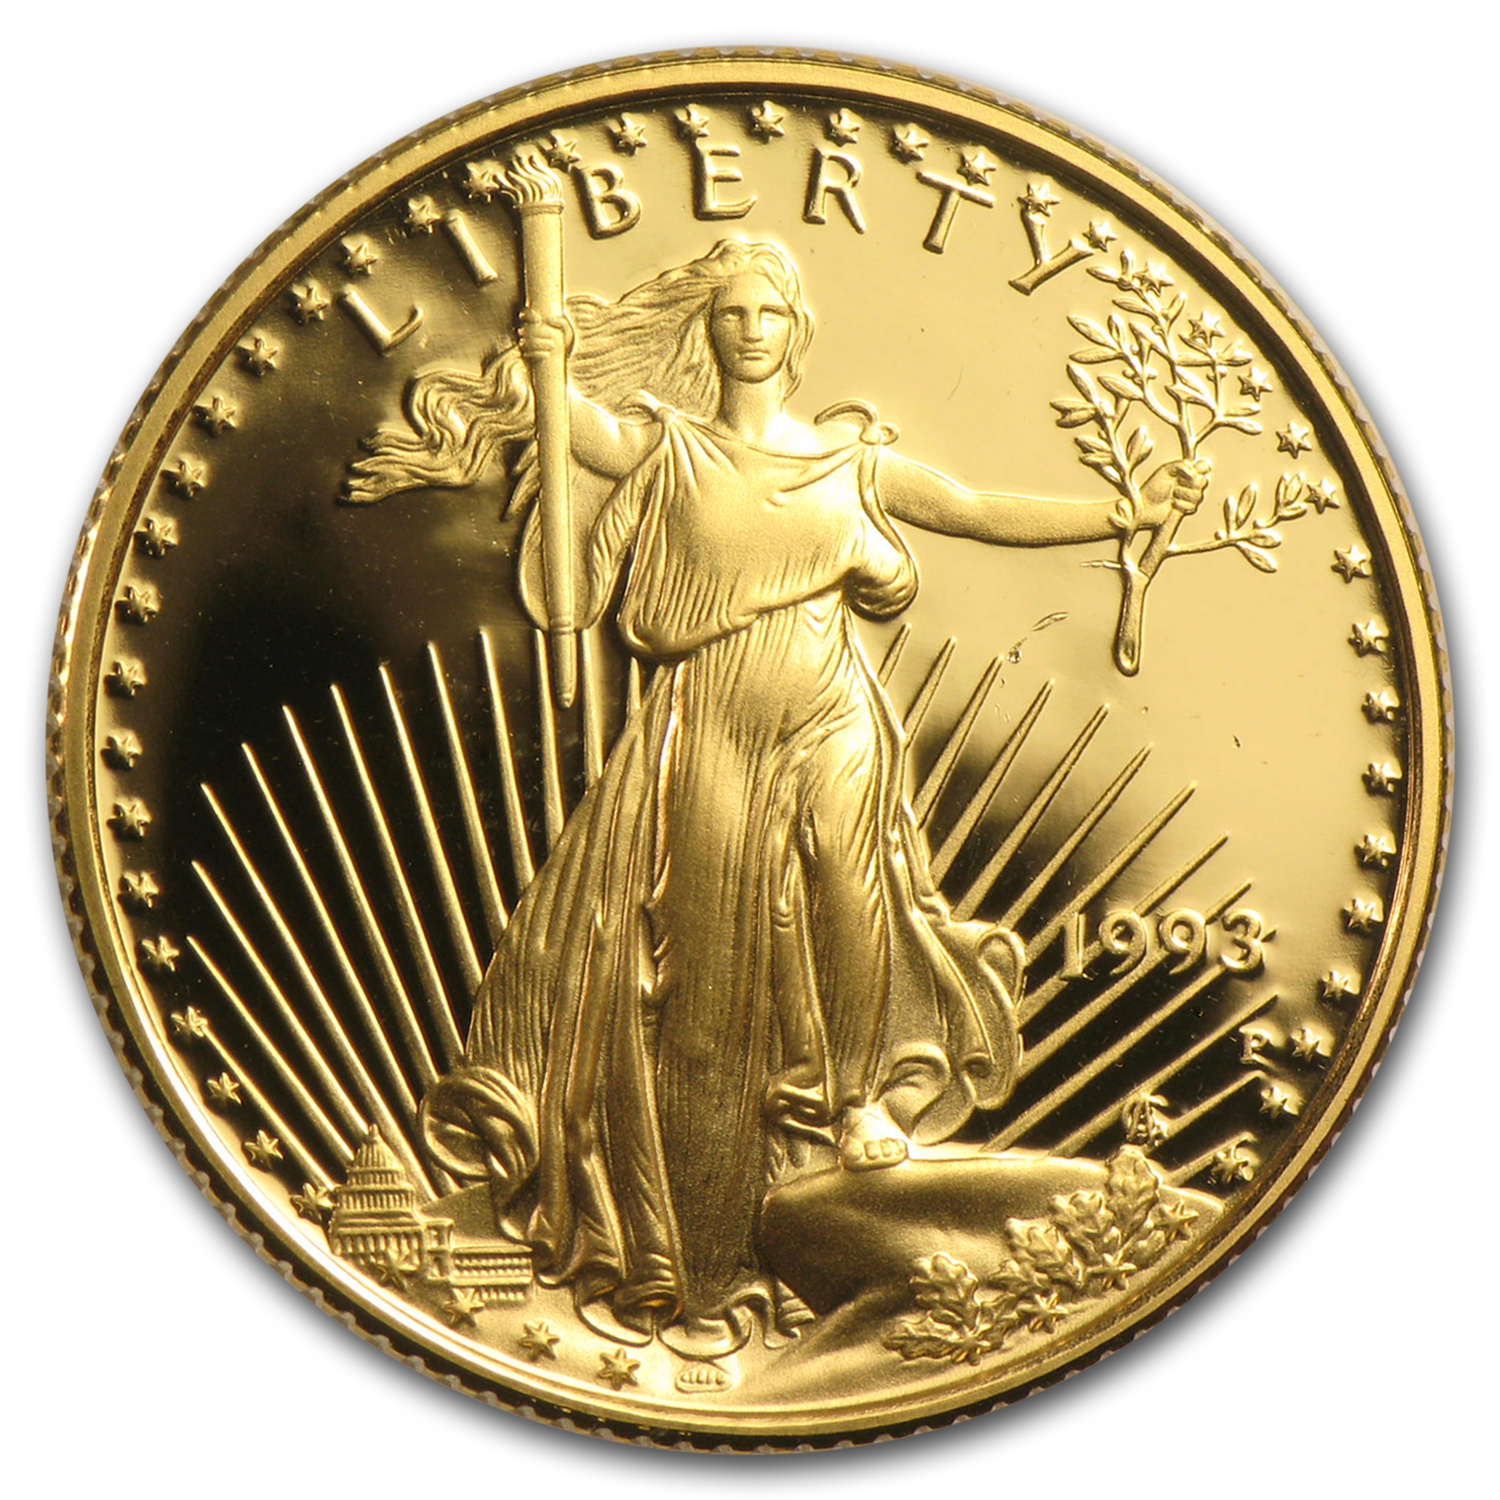 1/4 oz Proof Gold American Eagle (Random Year, Capsule Only)